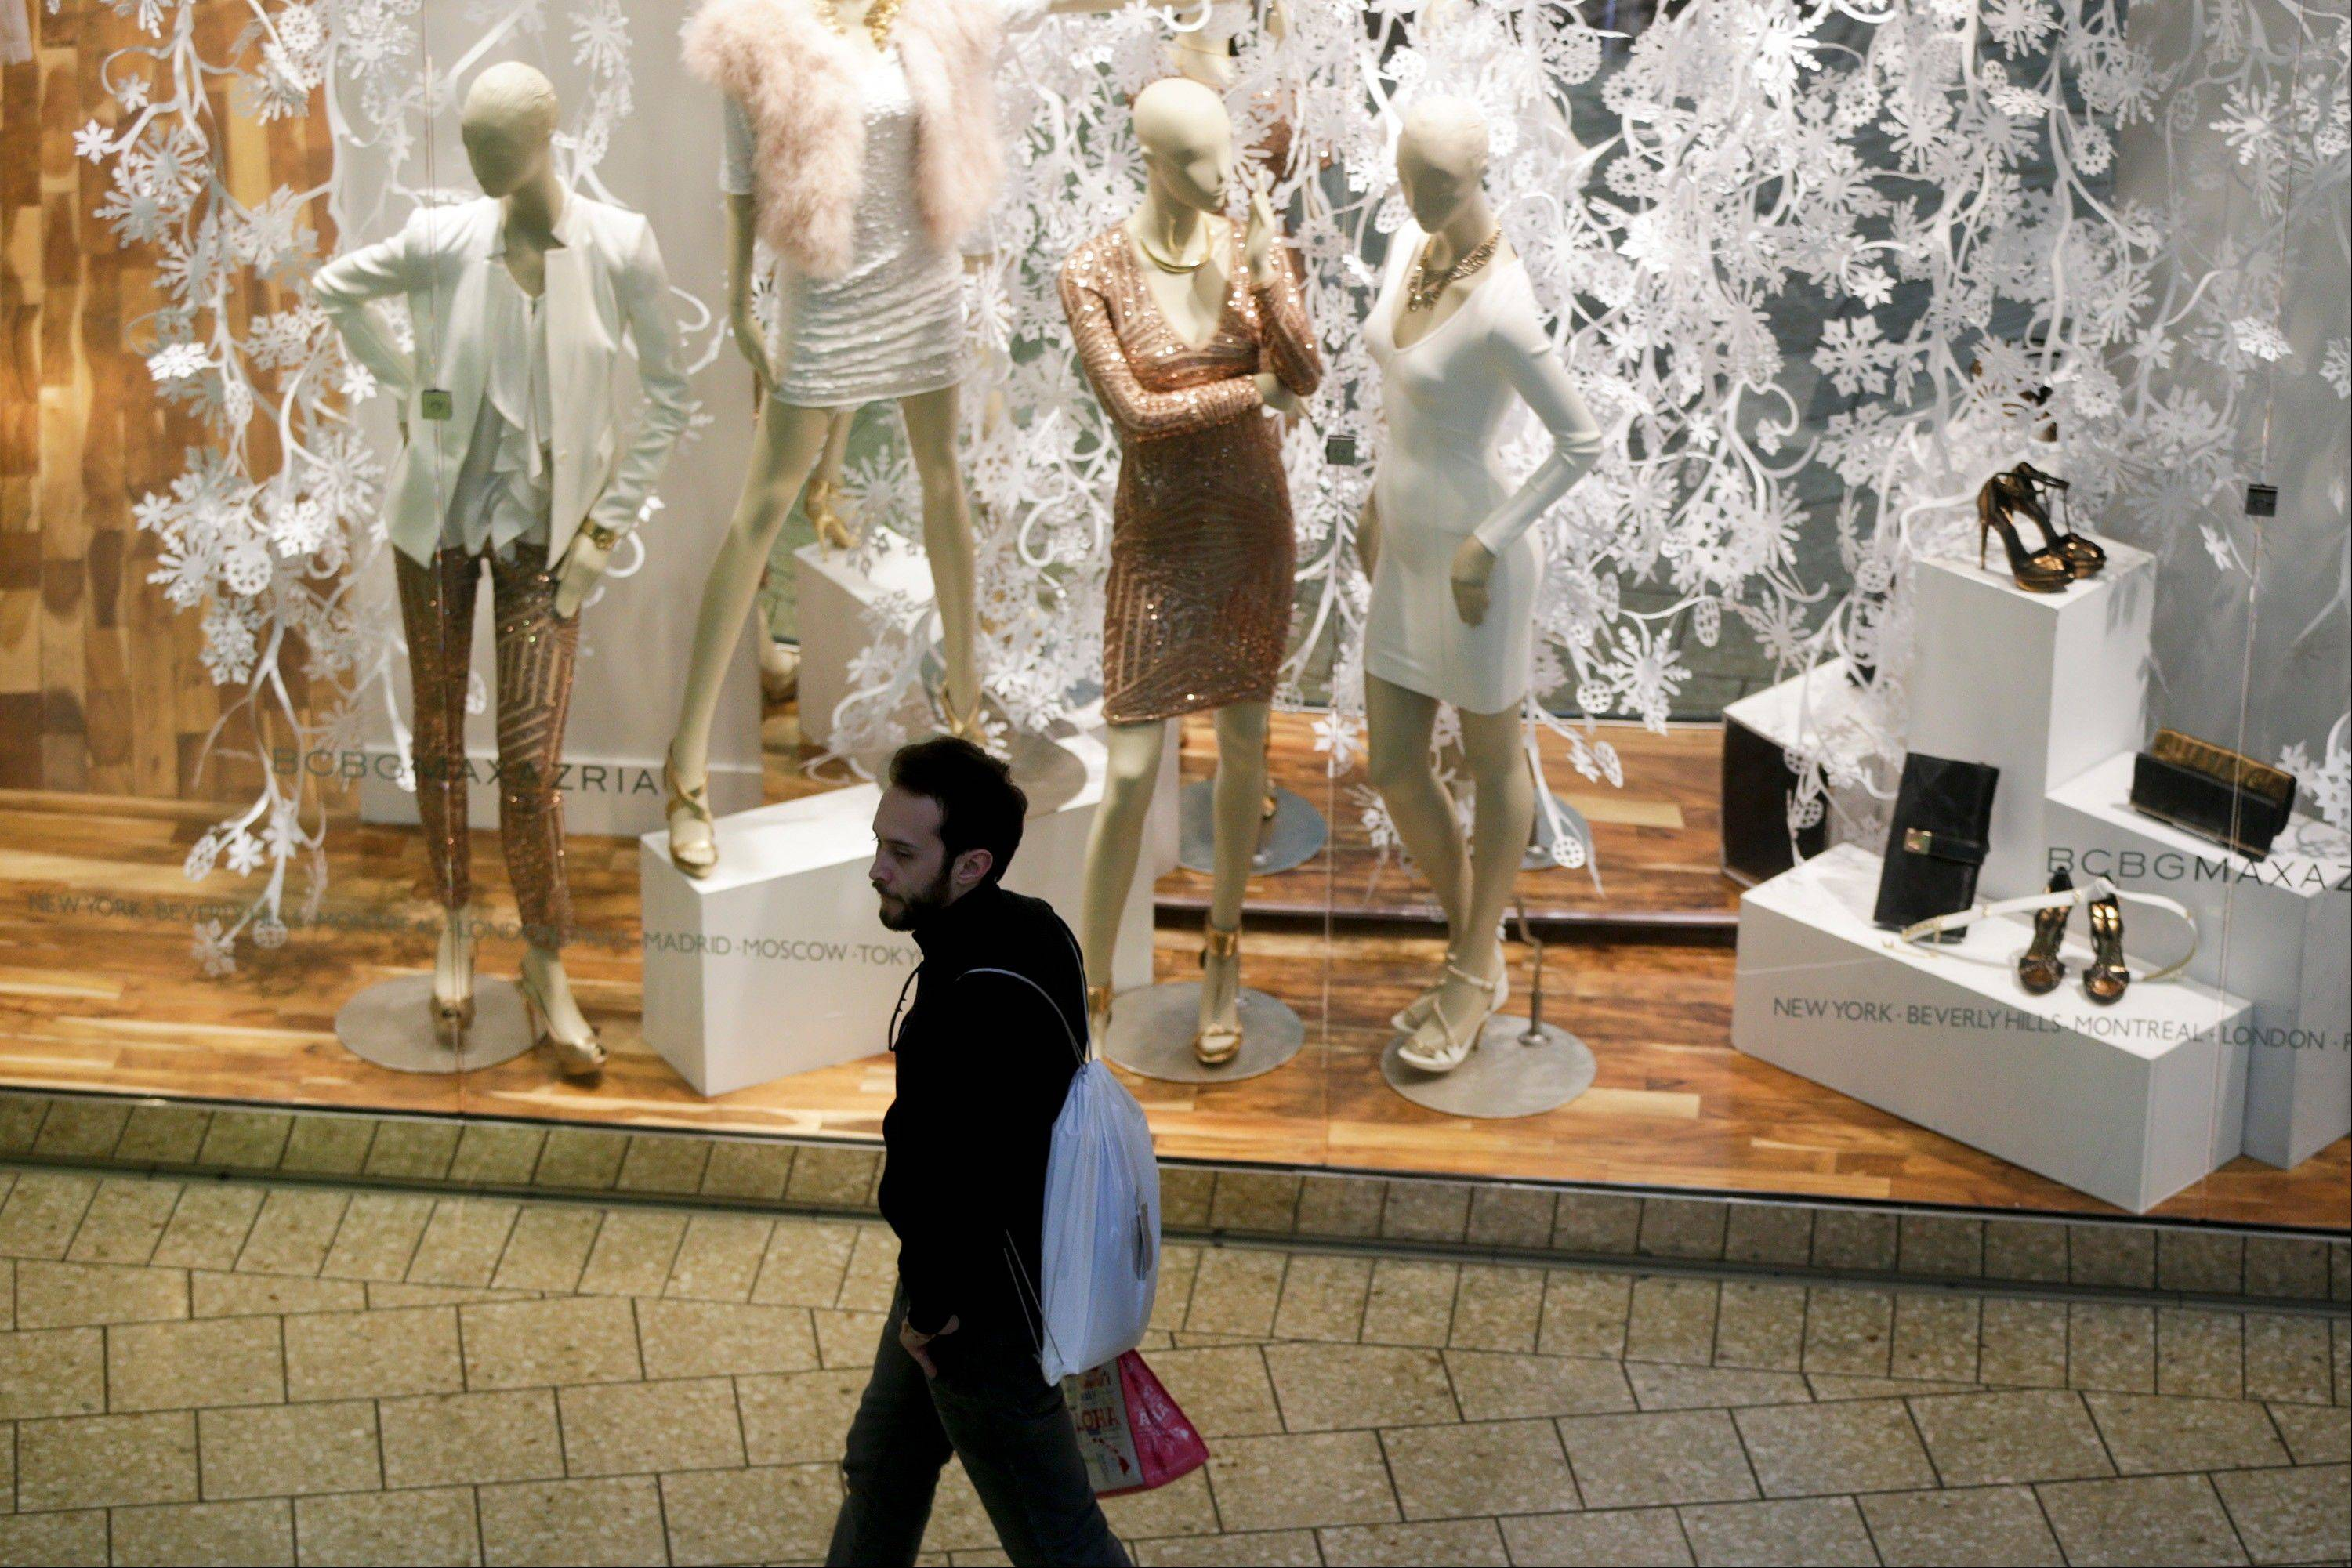 Bloomberg NewsA man carrying an Apple Inc. shopping bag walks past a BCBG Max Azria Group Inc. store Monday at the Fair Oaks Mall in Fairfax, Virginia, U.S. Apple has recently shown a willingness to settle some of its legal disputes.